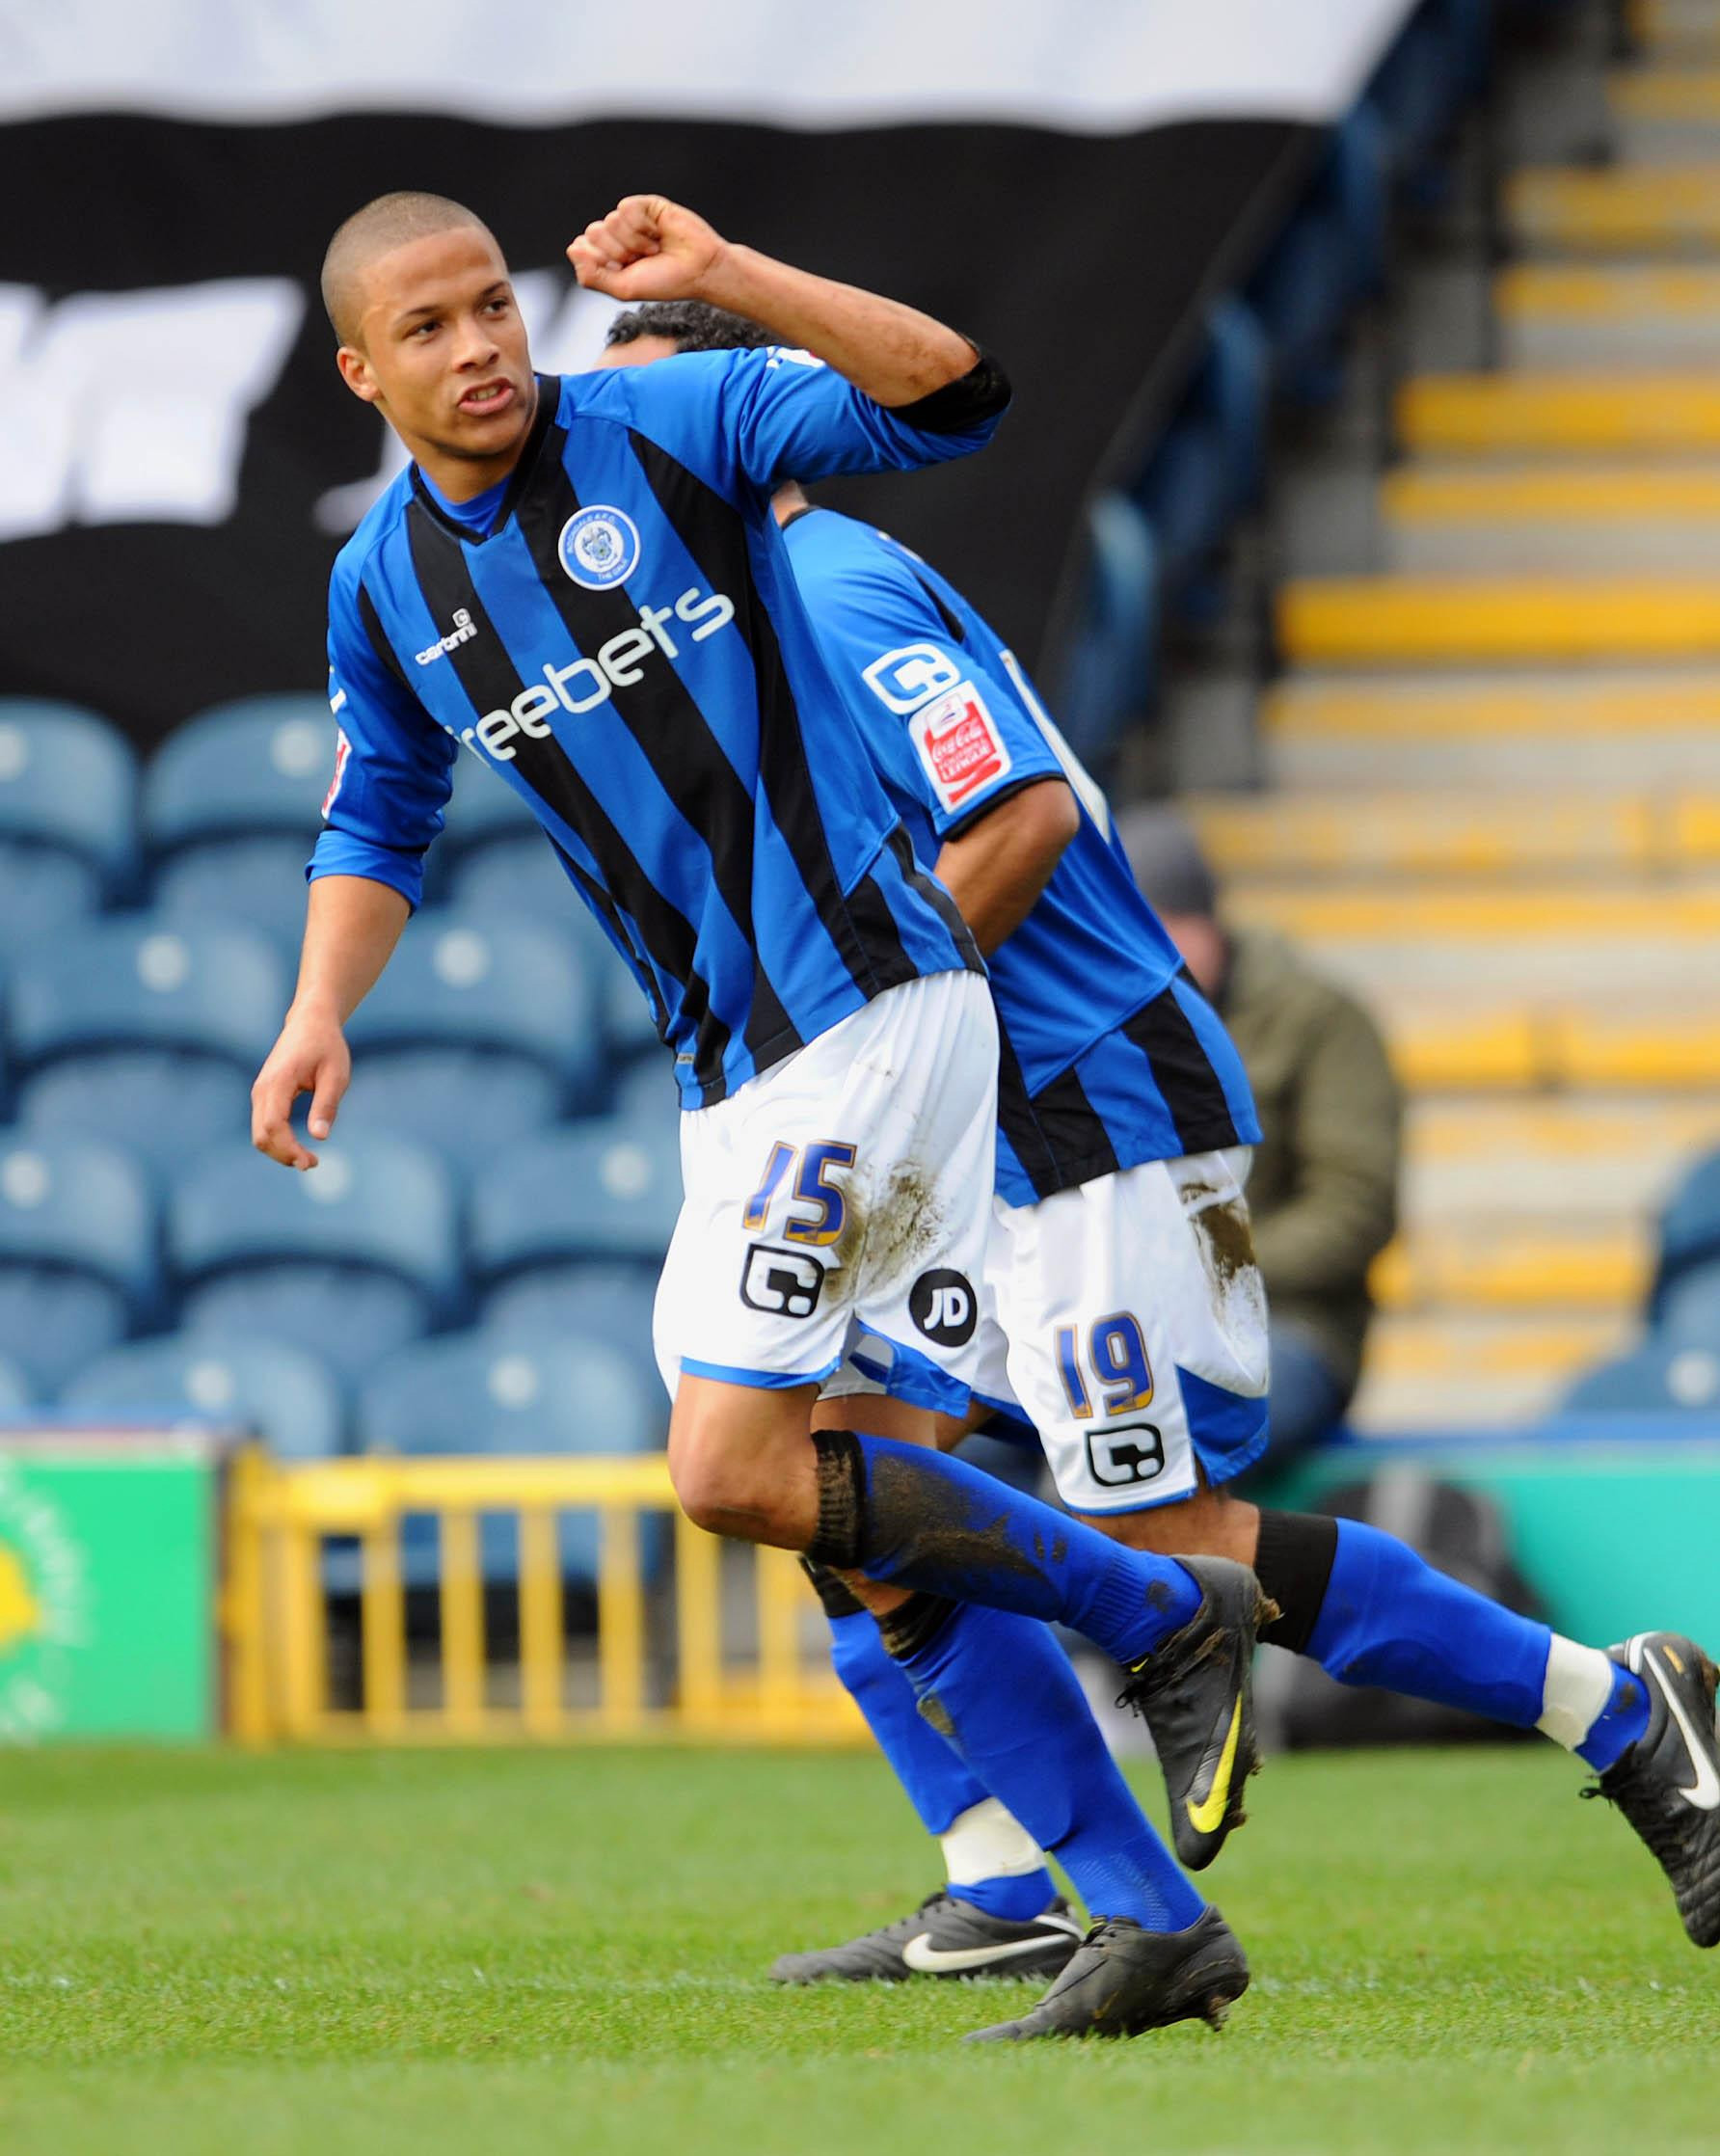 Rochdale midfielder Joe Thompson has announced his retirement from football at the age of 29 following two battles with cancer. Picture: PA Wire